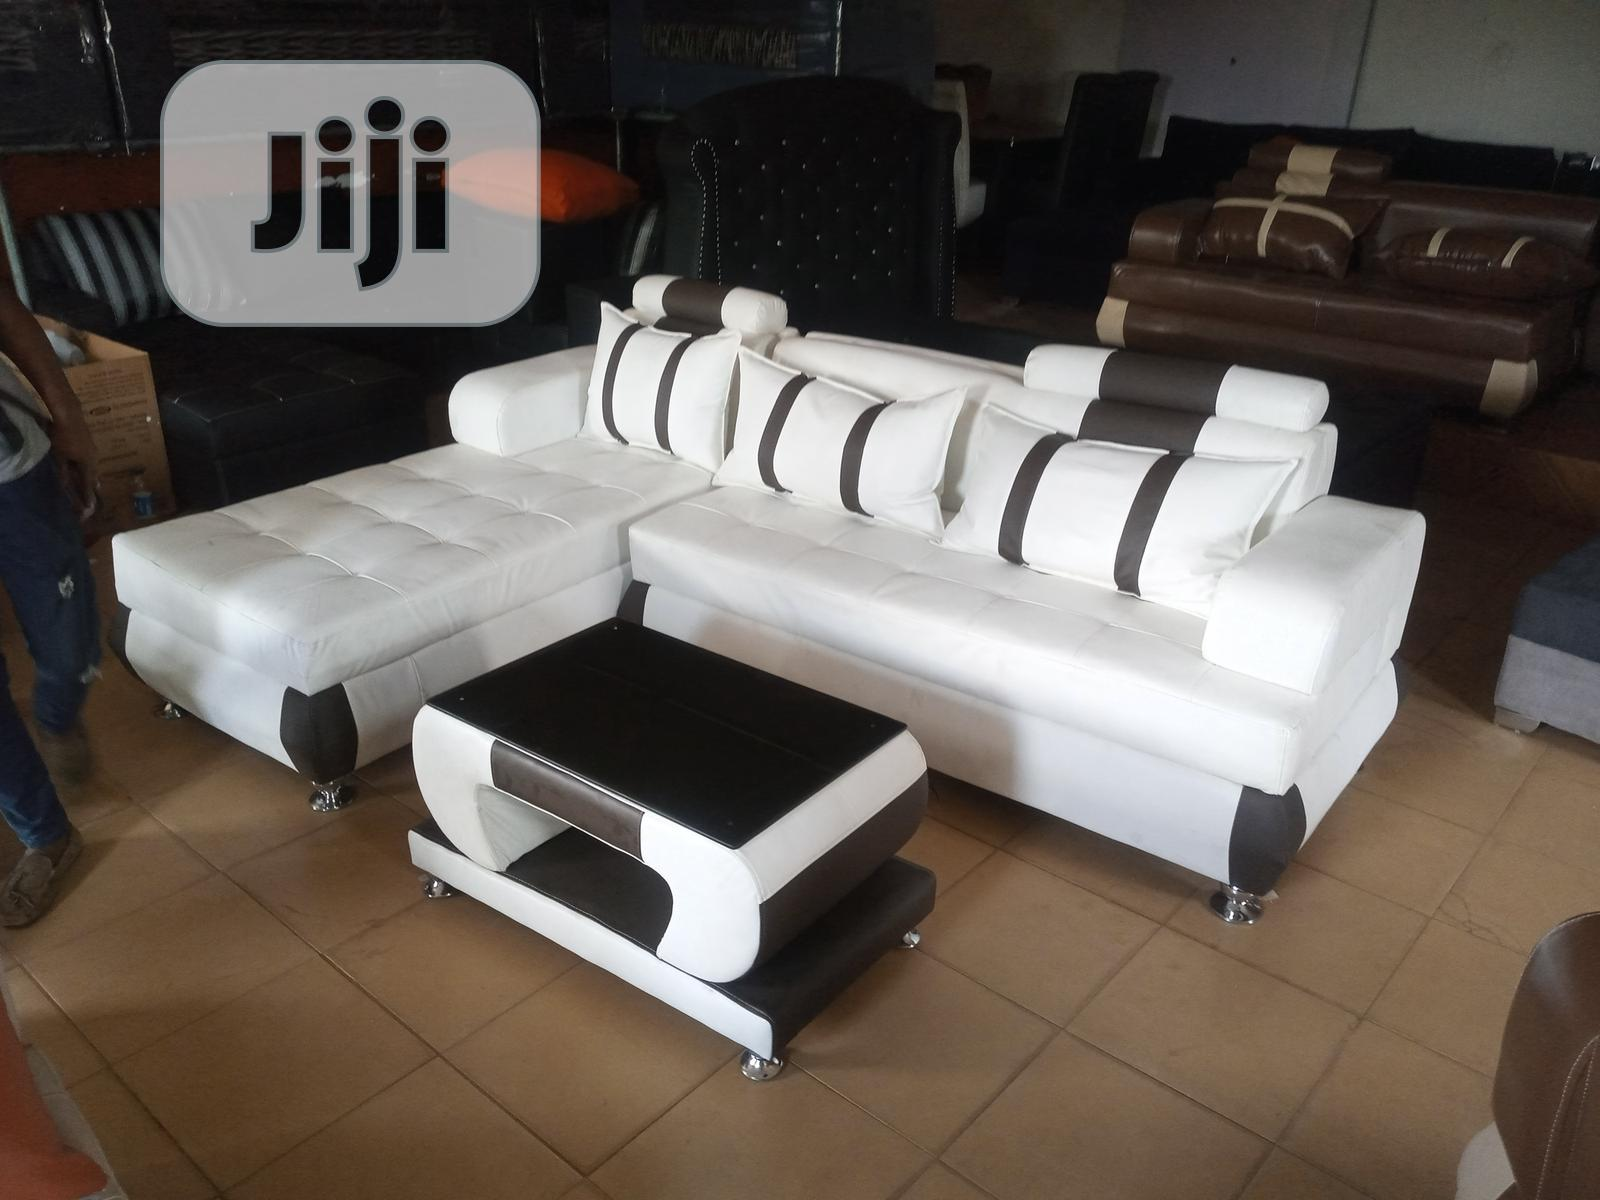 L-Shape Sofa With Centre Table - Leather Couch